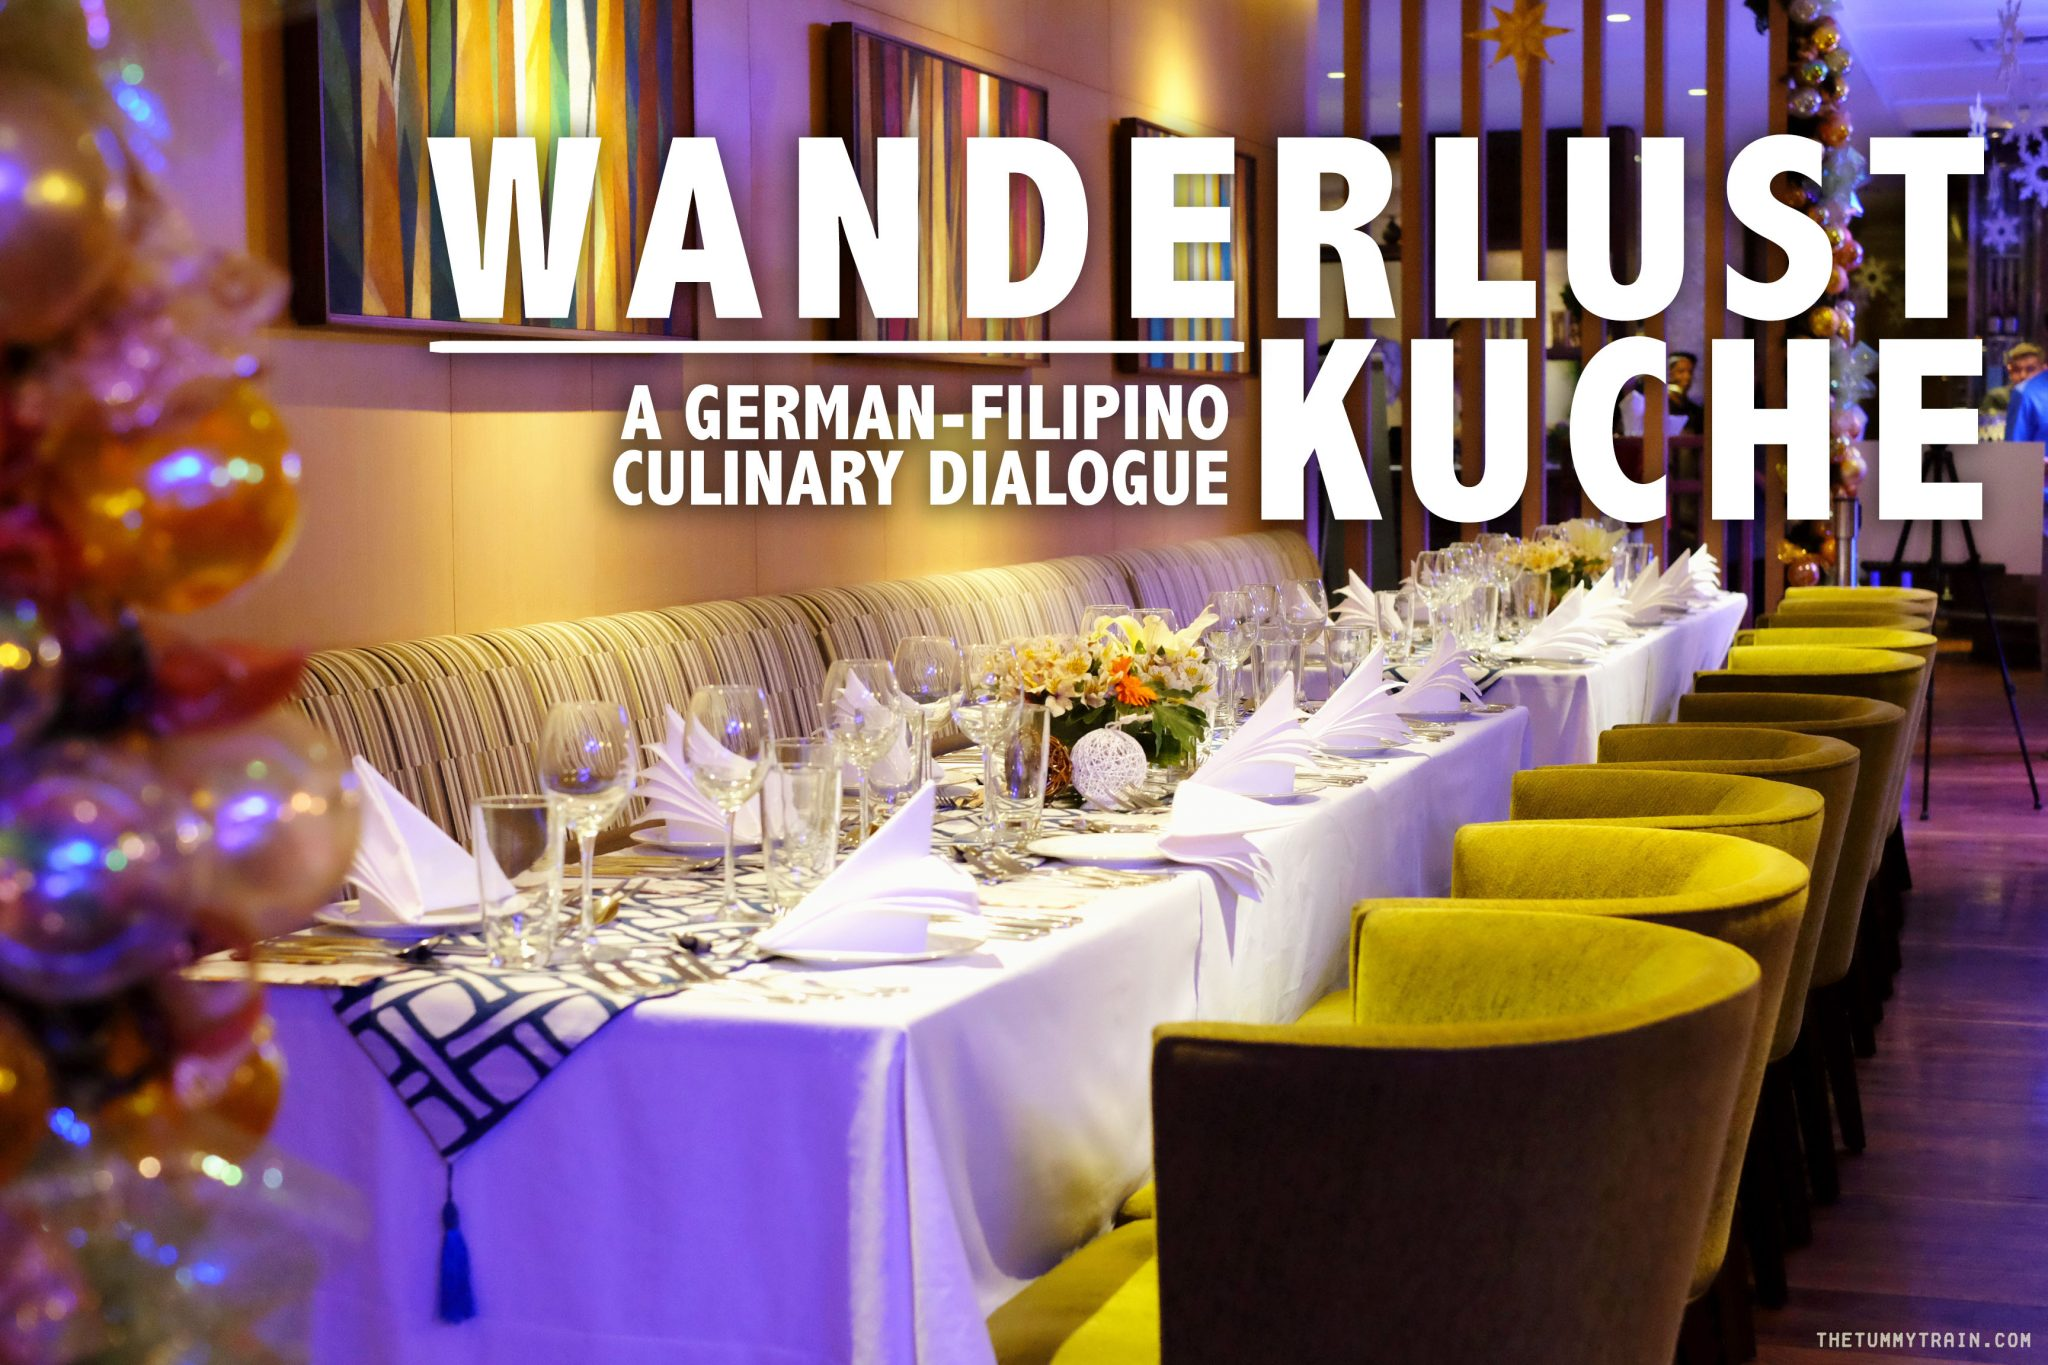 My Asia Küche Wanderlust Küche Blue Hour Dinner By Goethe Institut The Tummy Train